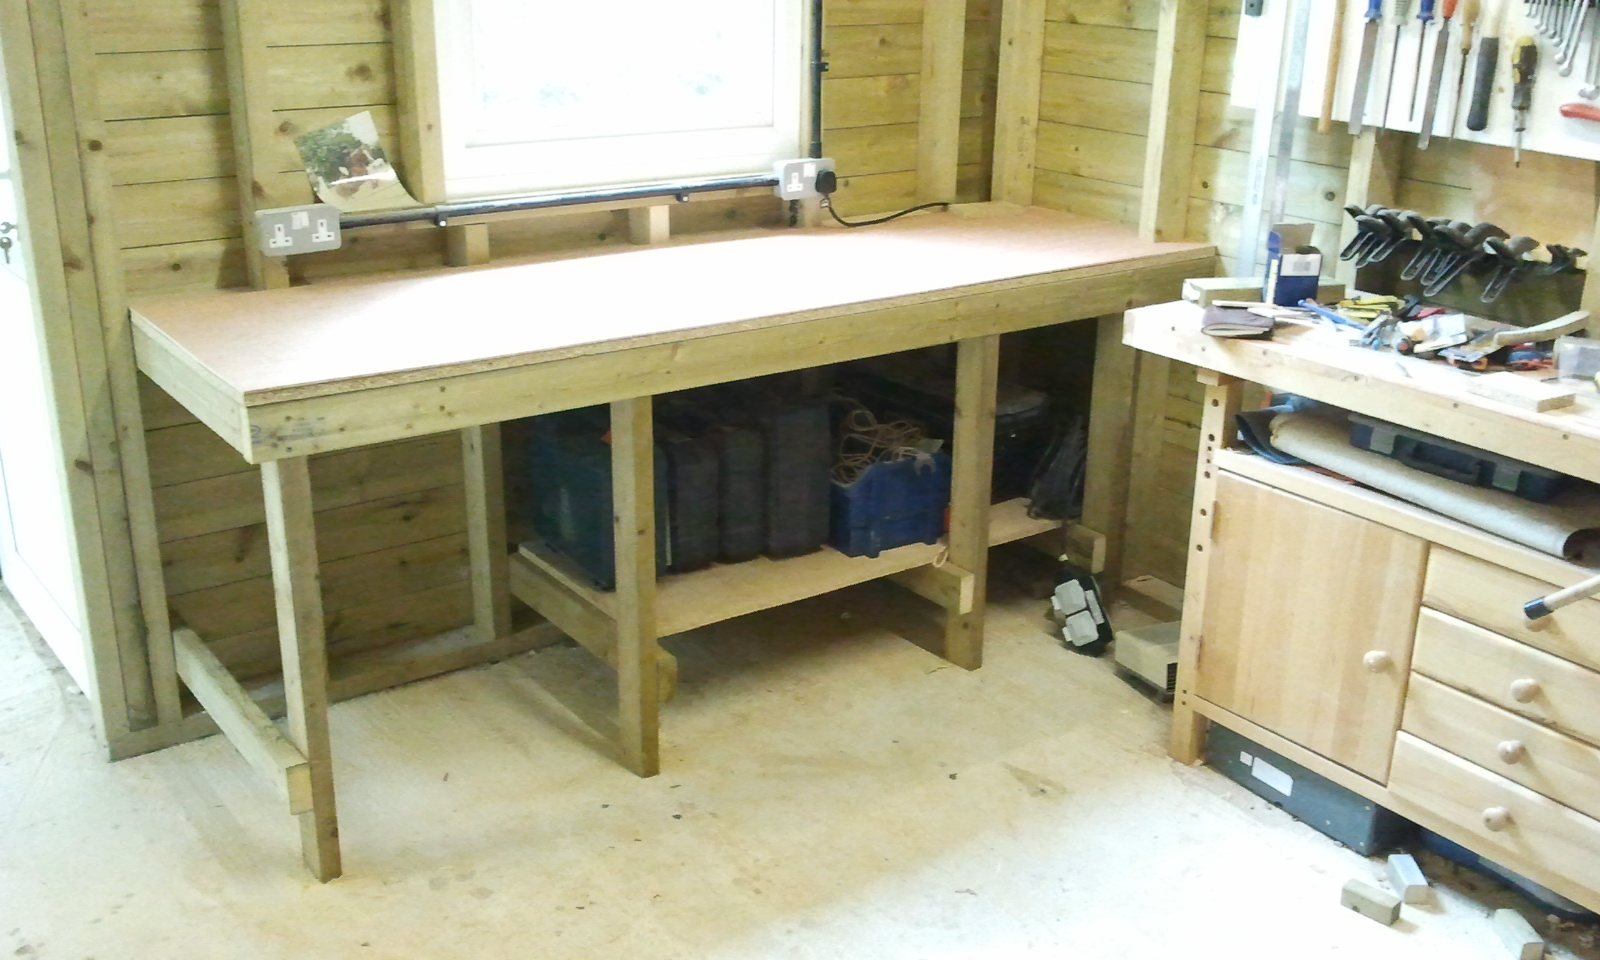 daisy grace wheels on the dinghy and new workbench in the